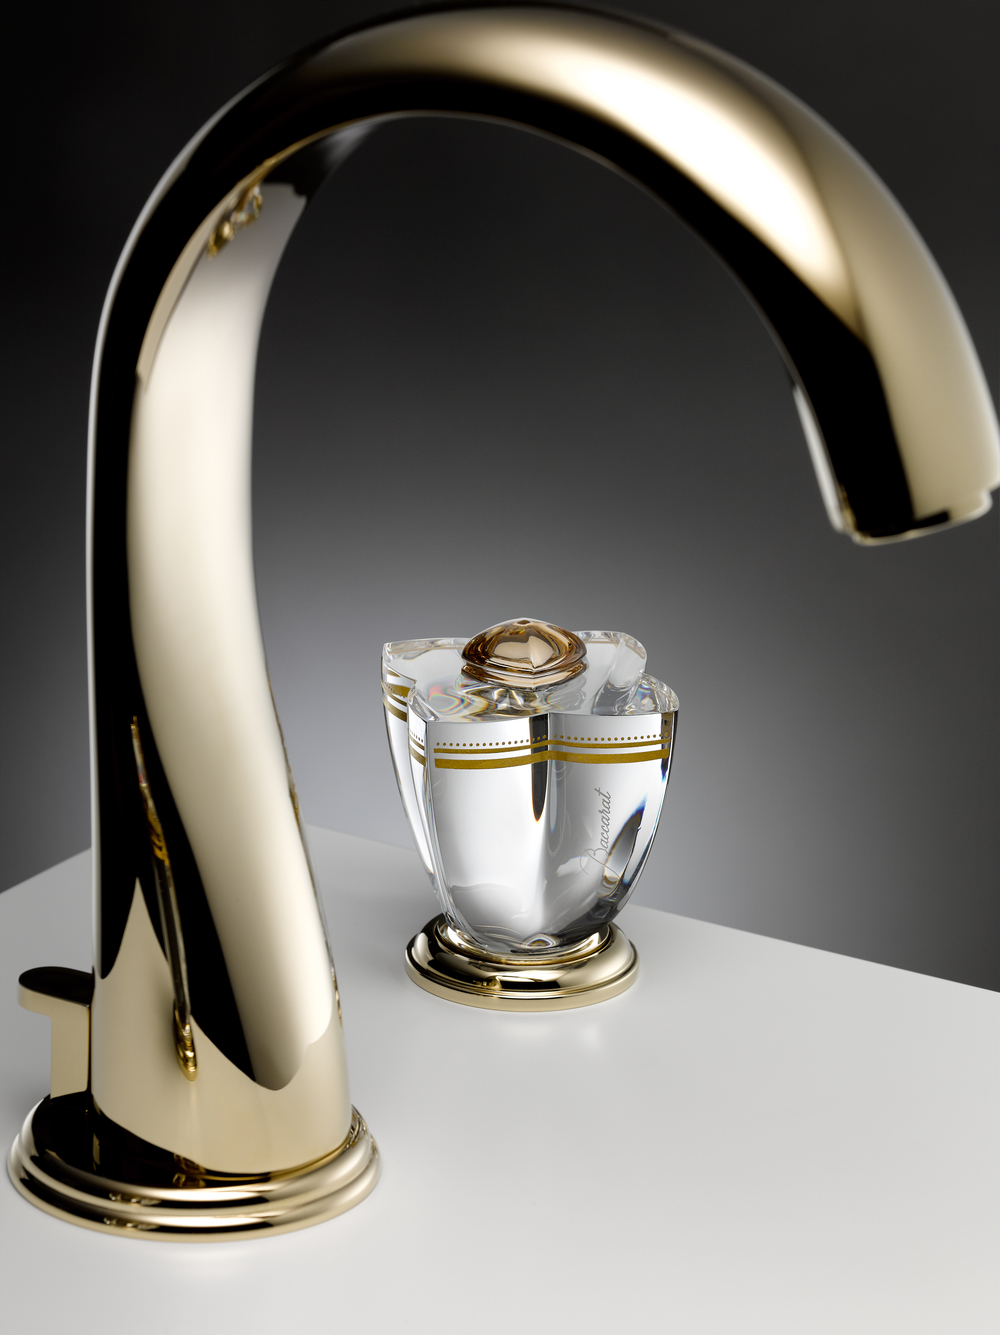 THG Paris Baccarat Numero 60 washbasin faucet, price available on request,  thgusa.com